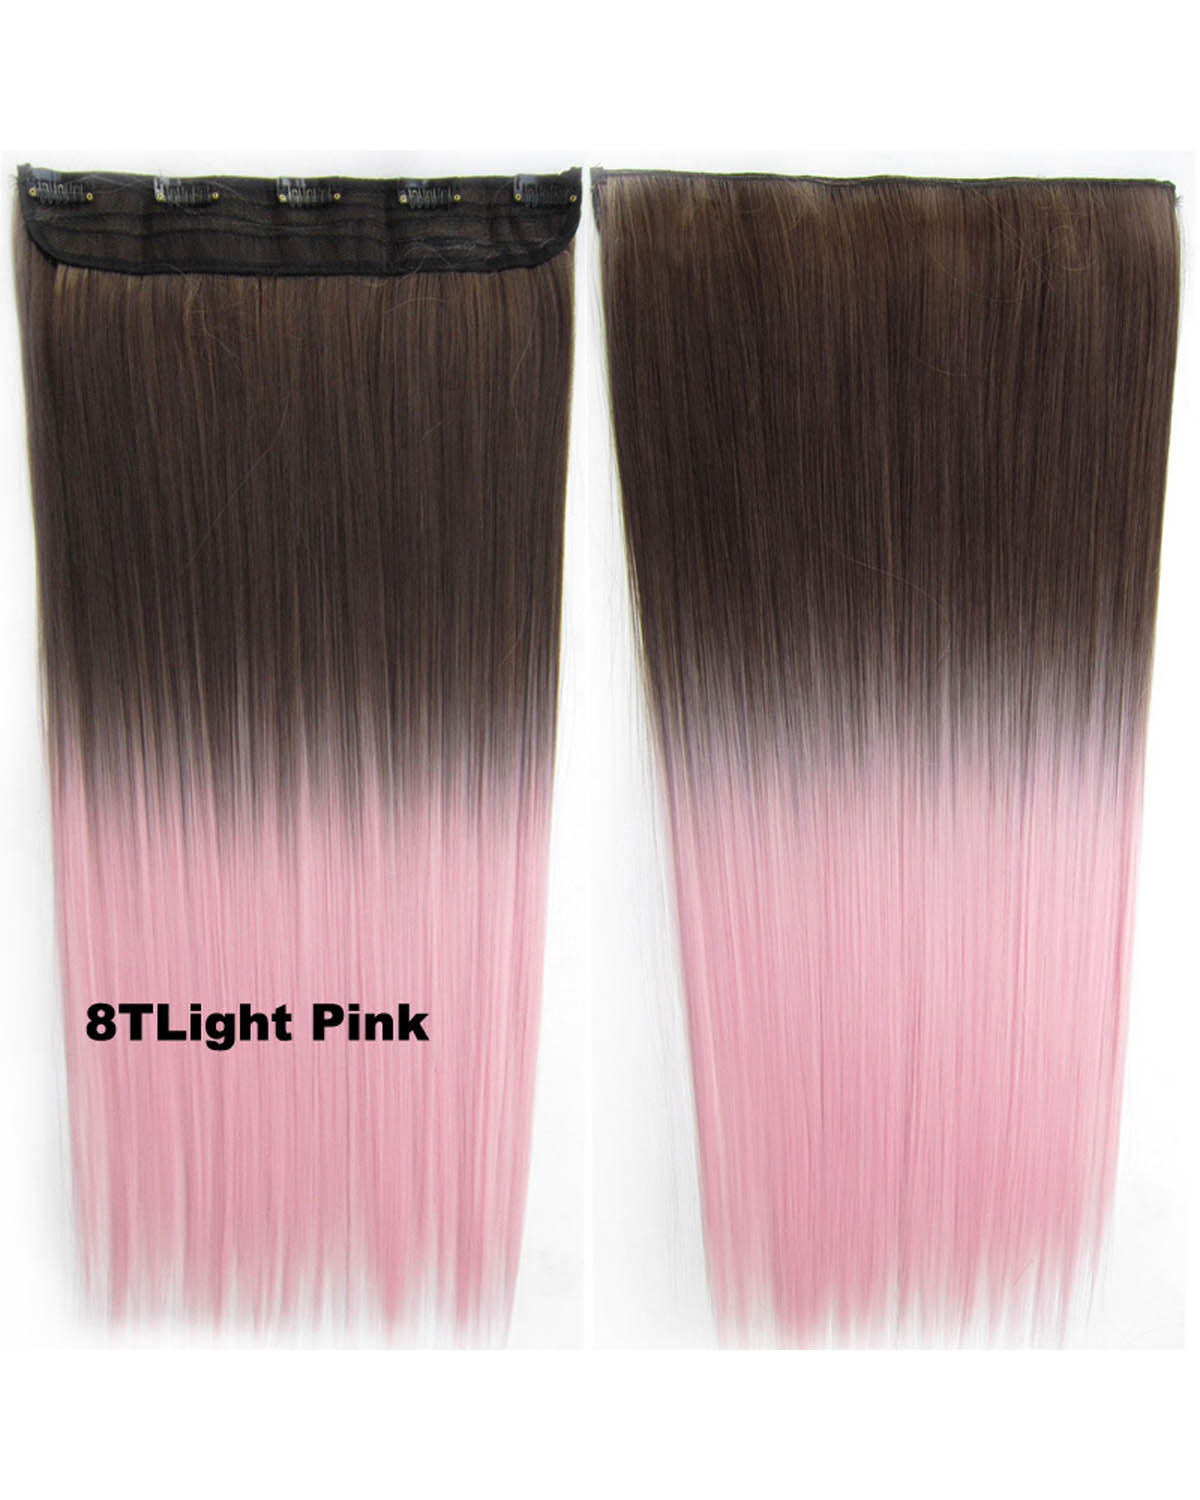 24 Inch Female Long and Smooth Straight One Piece 5 Clips Clip in Synthetic Hair Extension Ombre 8TLight Pink